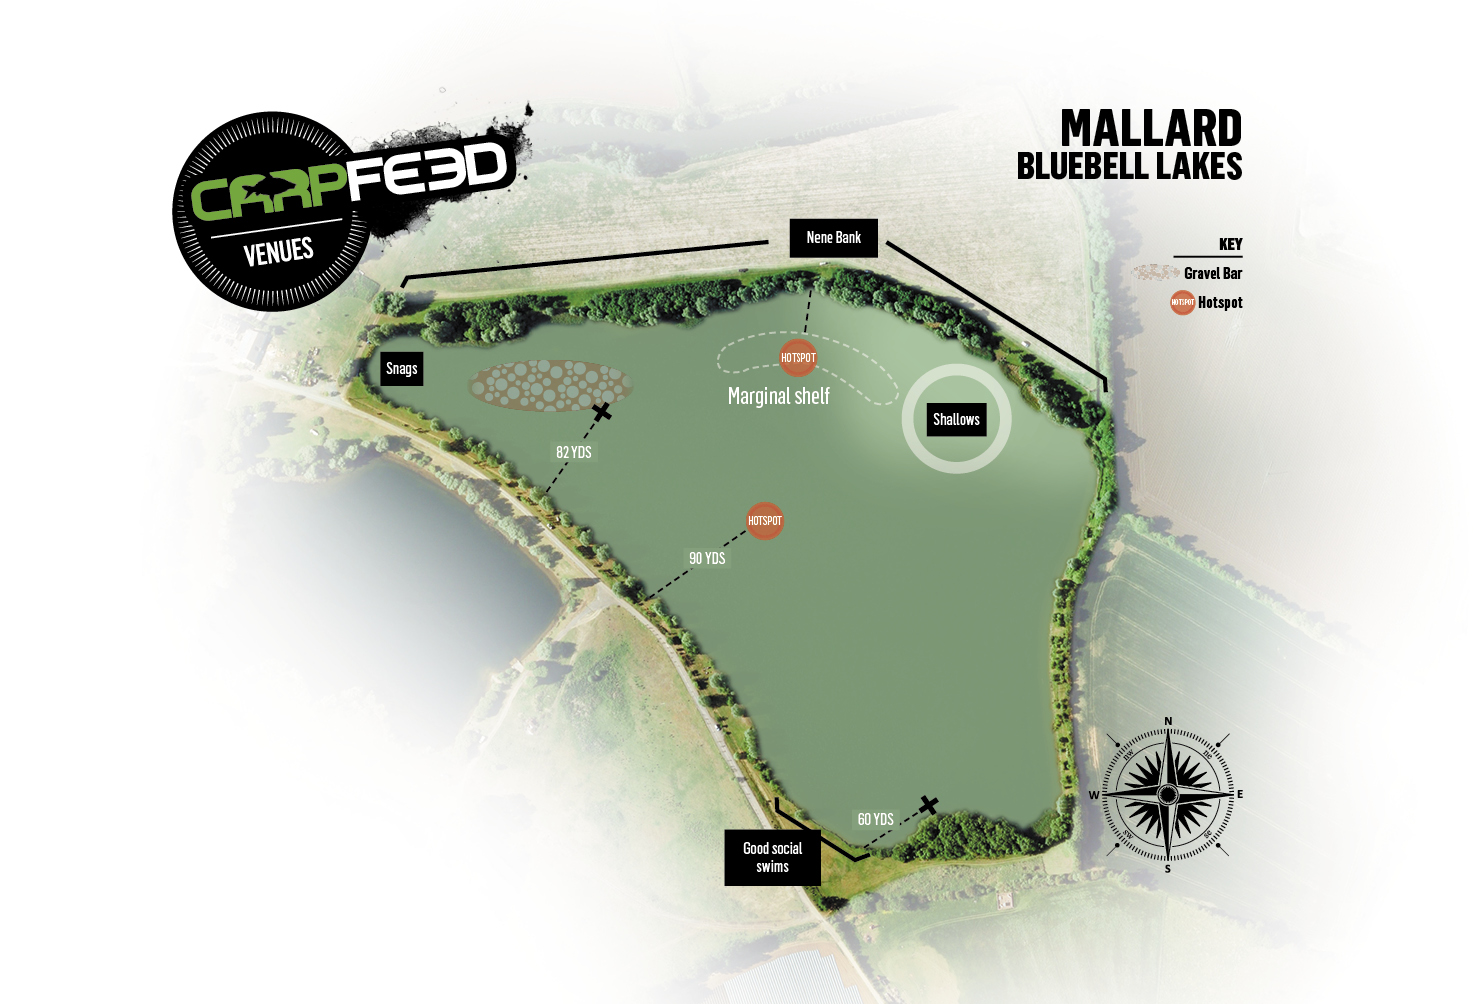 CLICK THE MAP FOR OUR GUIDE TO MALLARD